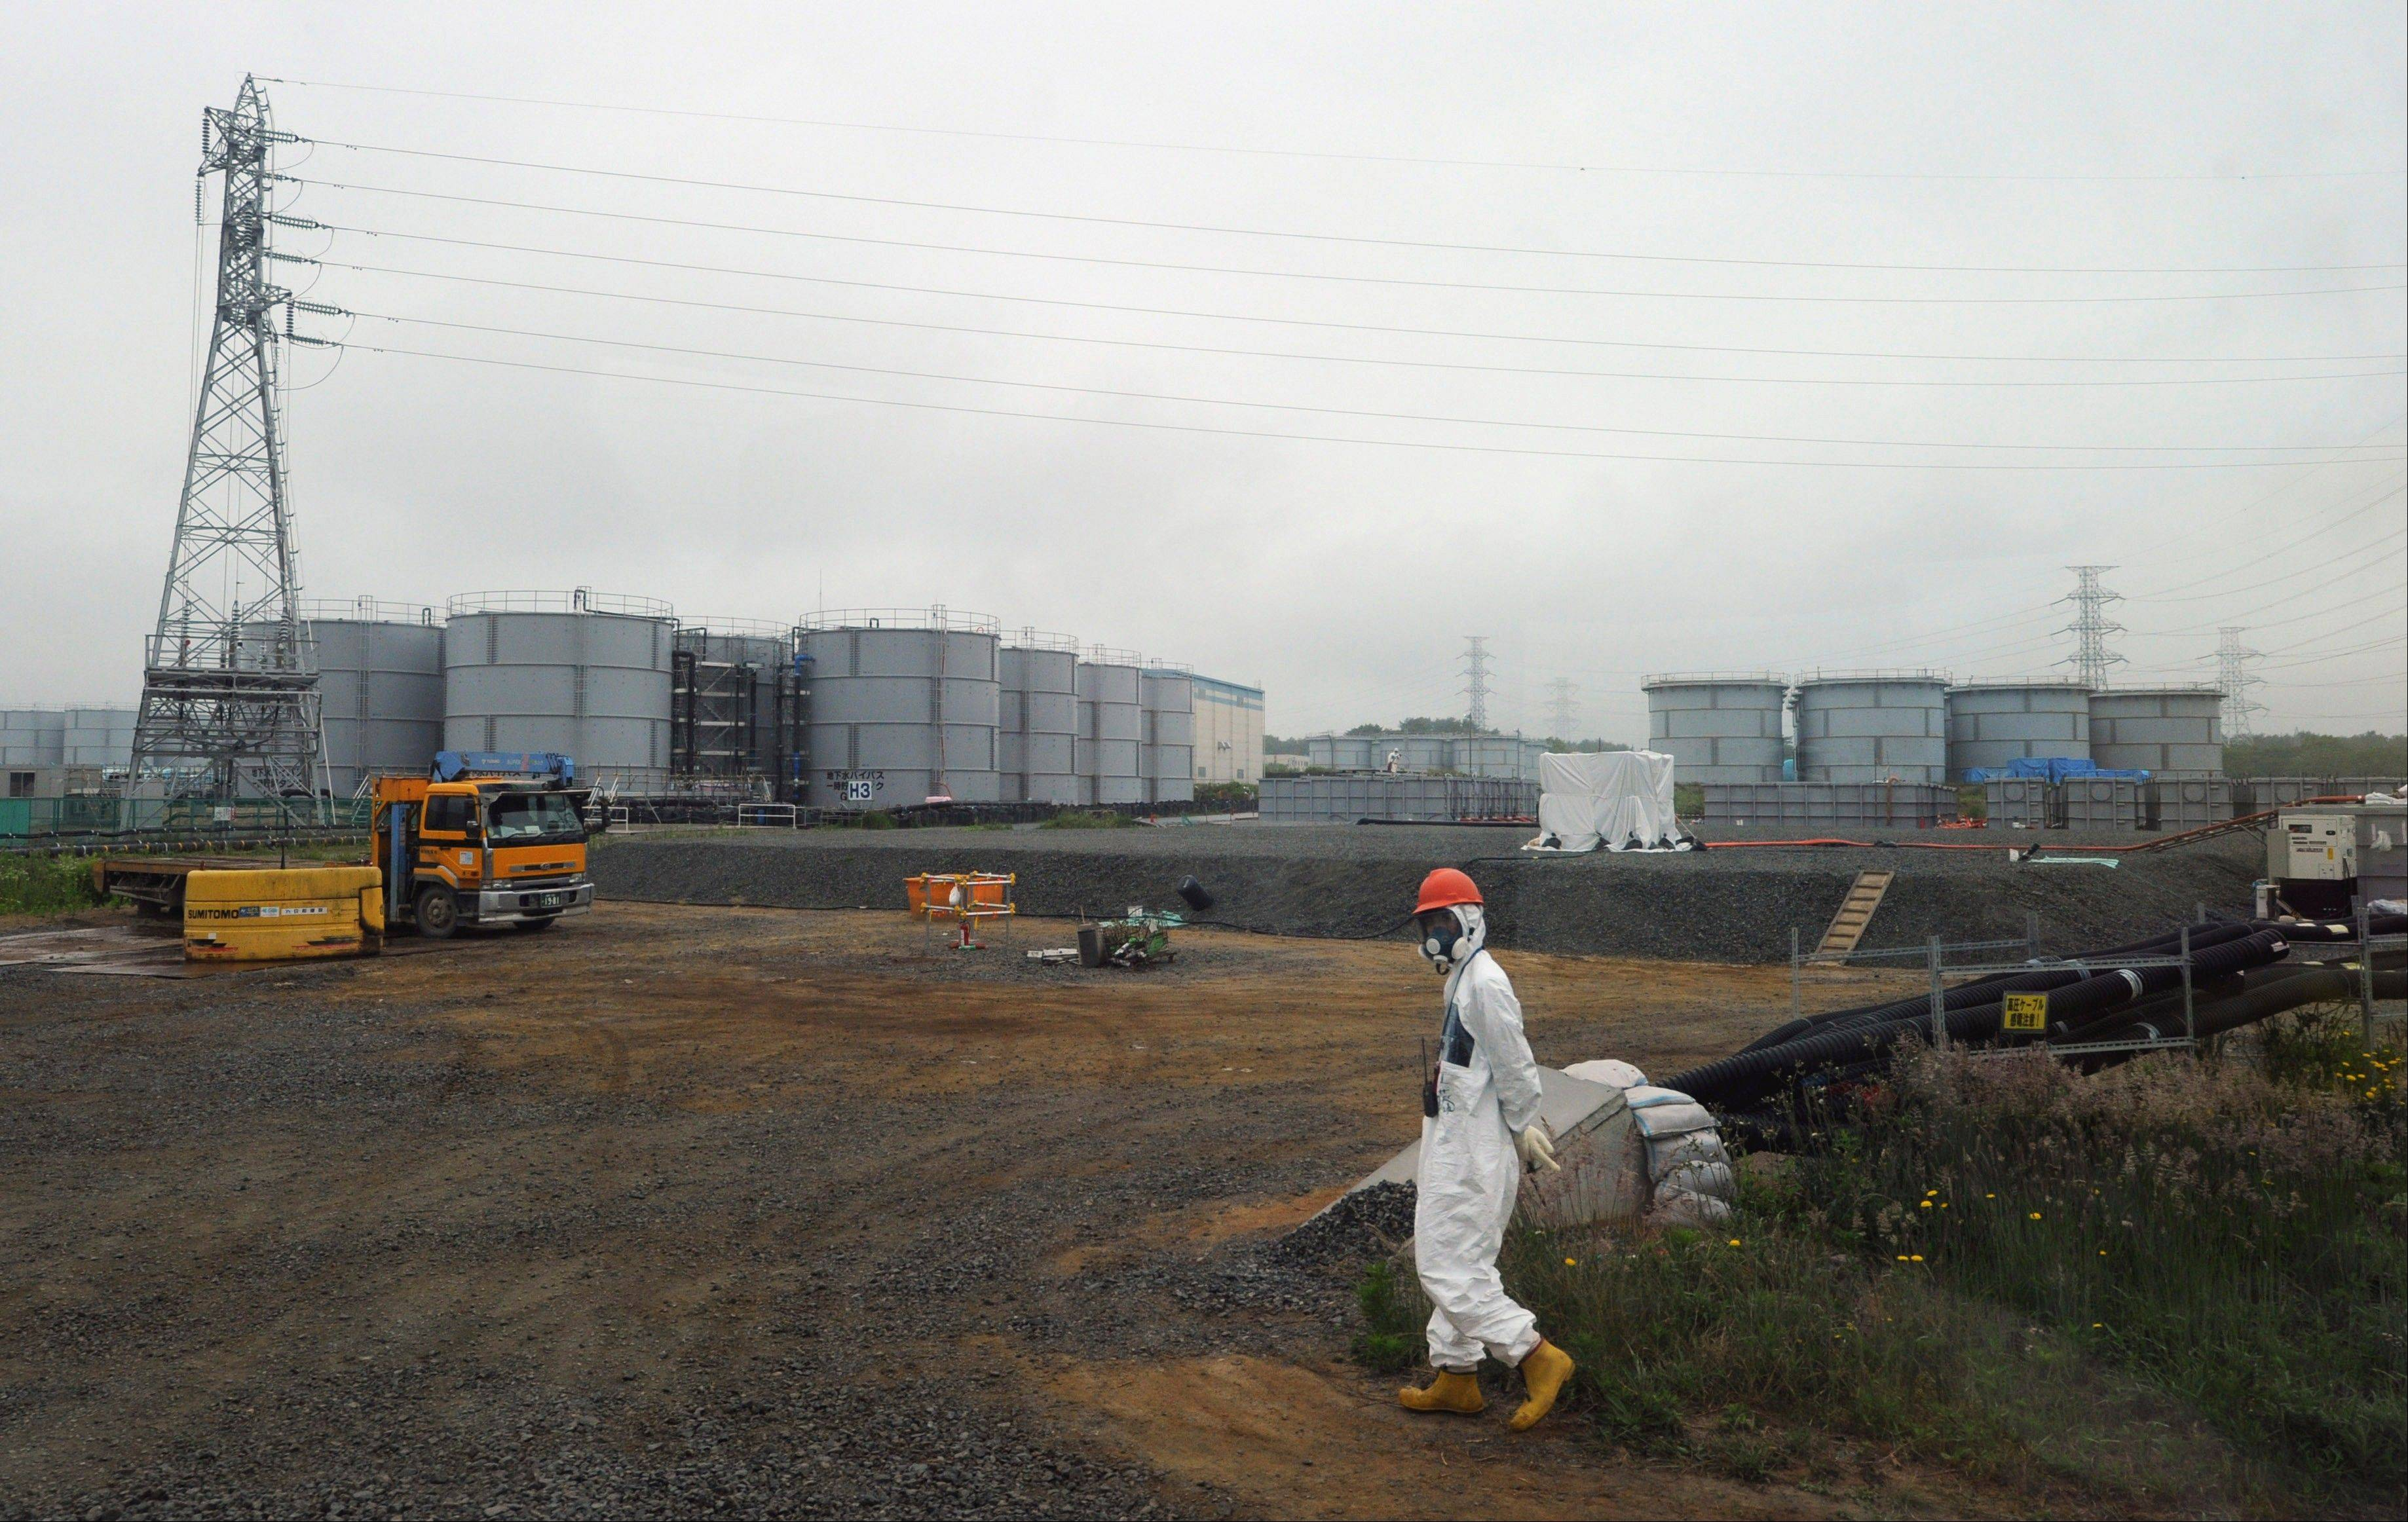 In this Wednesday, June 12, 2013 photo, a construction worker walks beside the underground water tank and water tanks at the Fukushima Dai-ichi nuclear plant at Okuma in Fukushima prefecture, Japan. A Japanese utility said its crippled Fukushima nuclear plant is likely to have leaked contaminated water into sea, acknowledging for the first time a problem long suspected by experts.